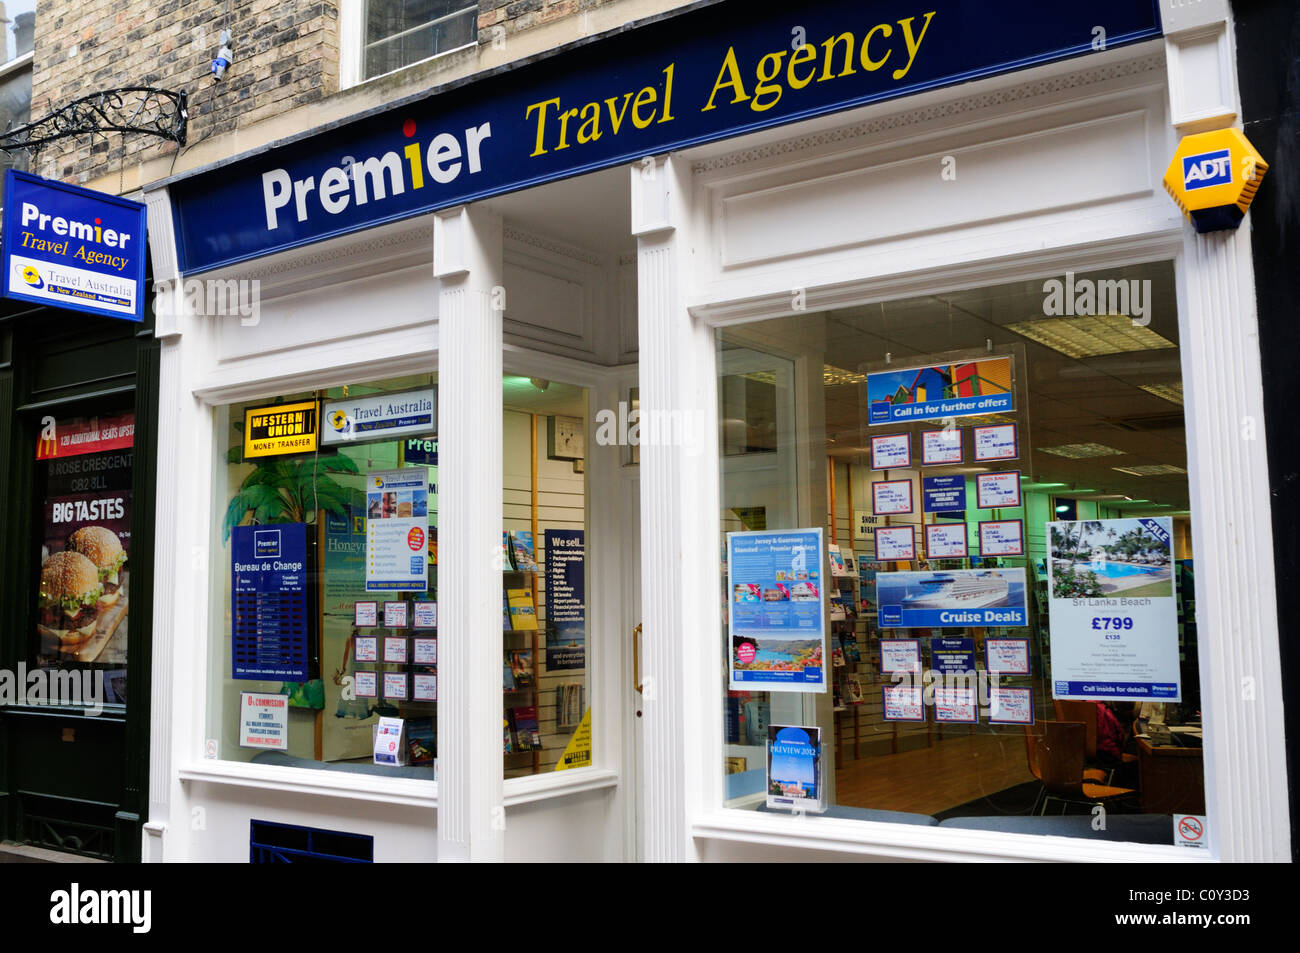 Premier Travel Agency, Rose Crescent, Cambridge, England, UK Photo Stock